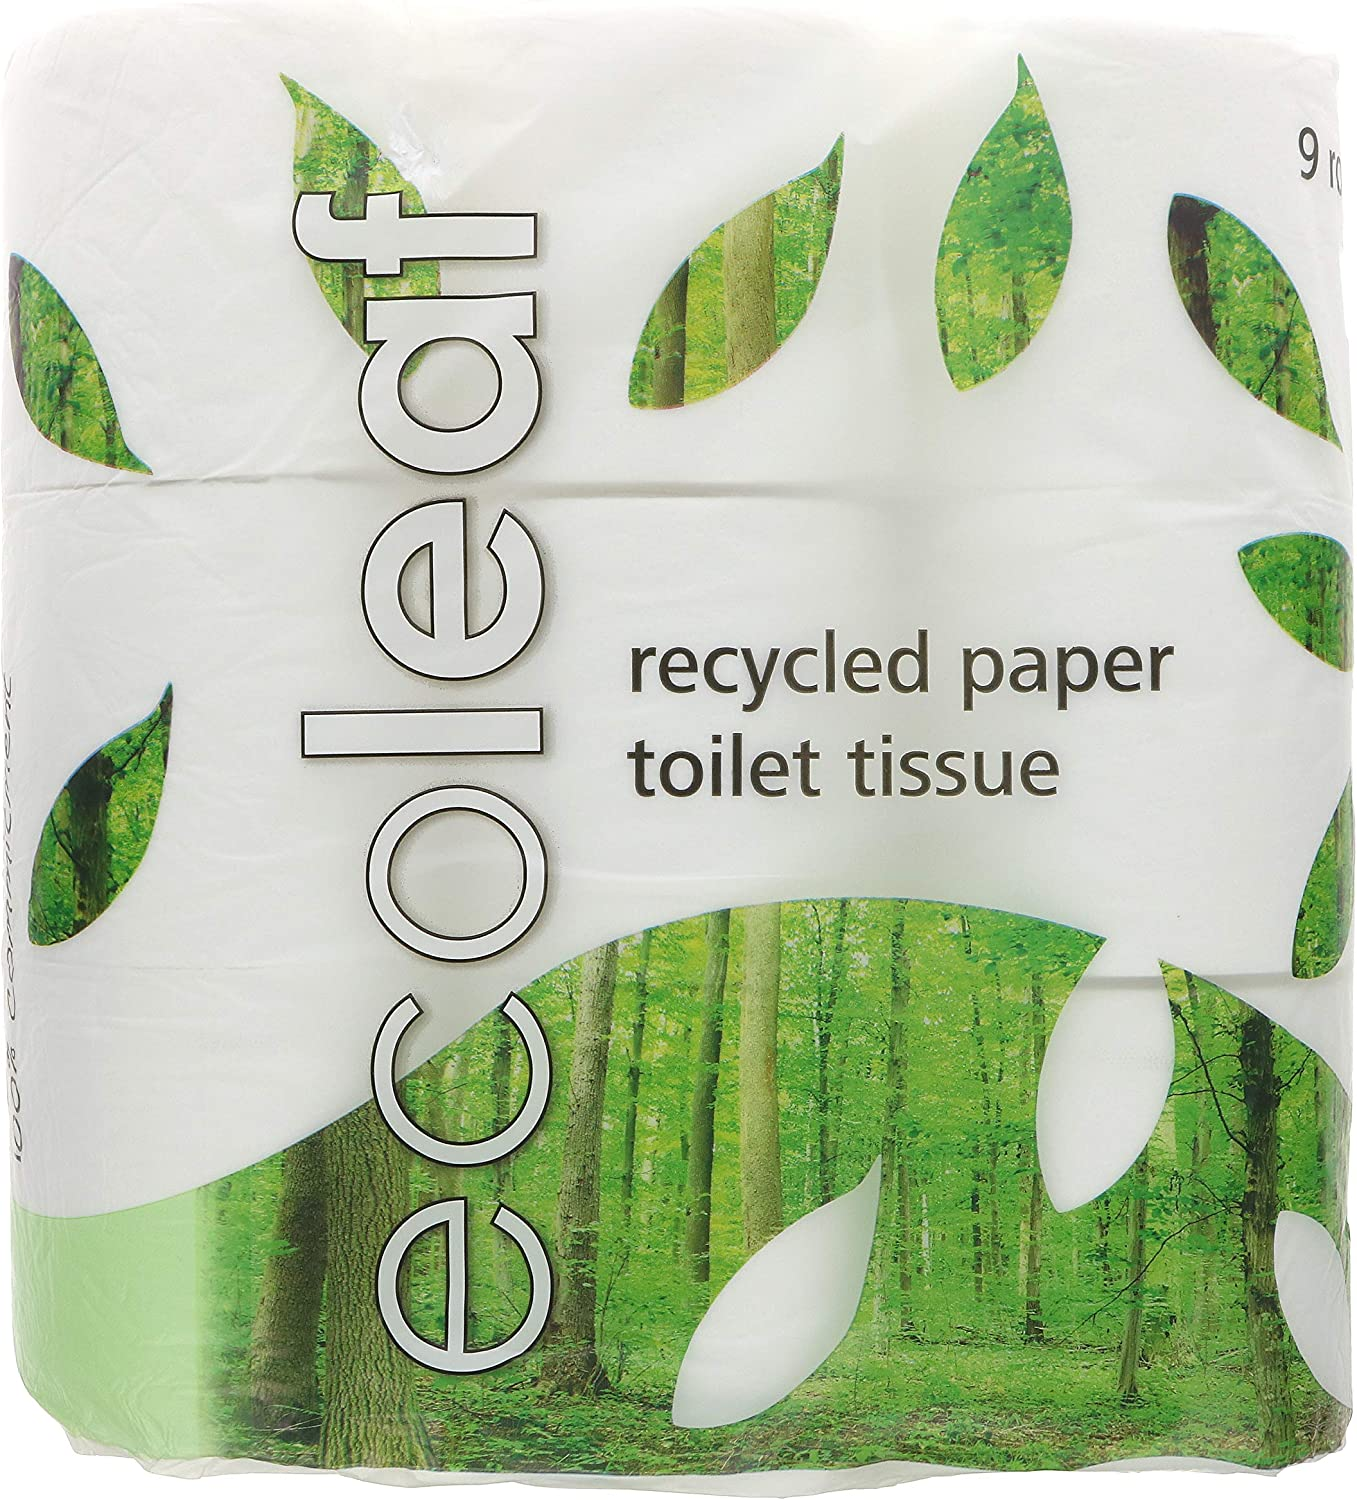 Suma Ecoleaf Toilet Tissue 9 Rolls (Pack of 5, Total 45 Rolls)